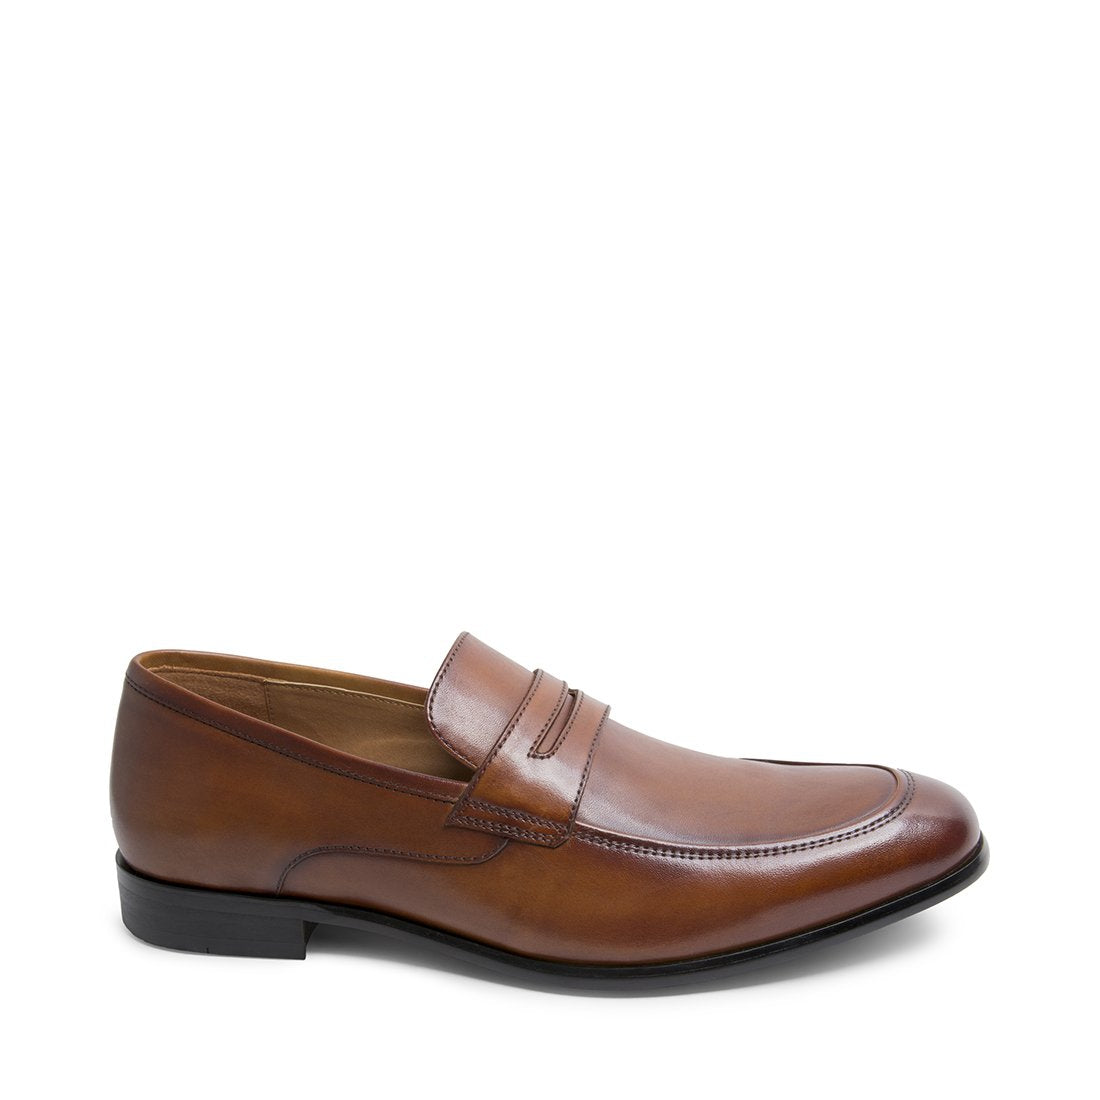 Primmo Tan Leather by Steve Madden